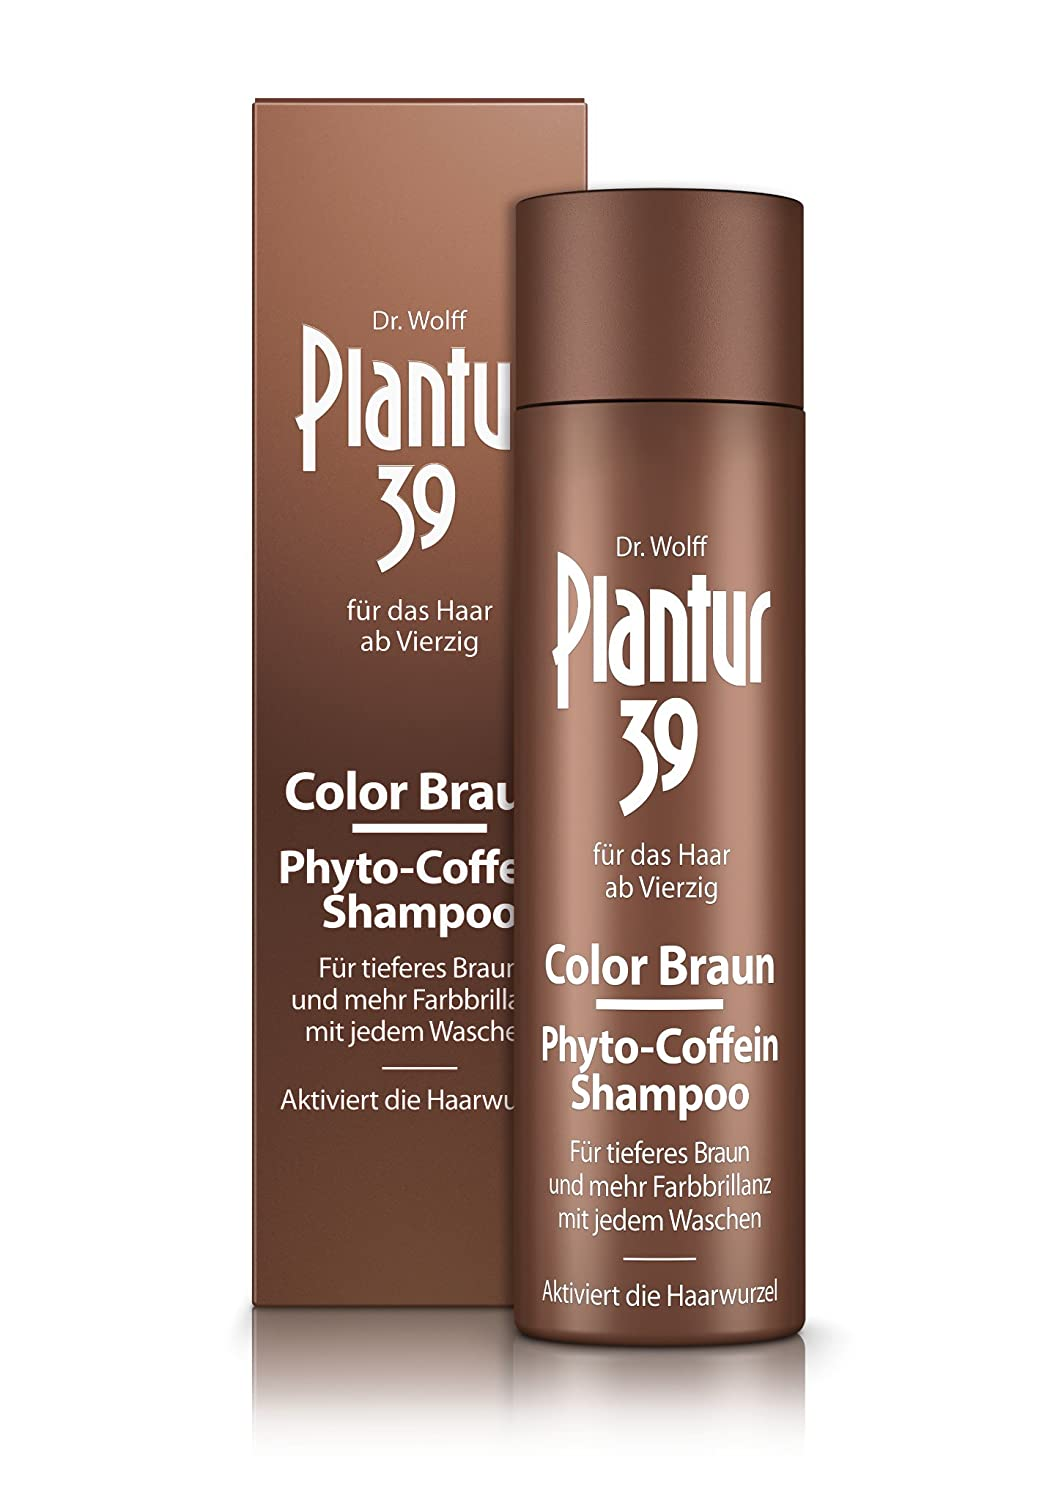 Plantur 39 Color Braun Phyto Coffein Shampoo, 250 Ml: Amazon.co.uk: Beauty